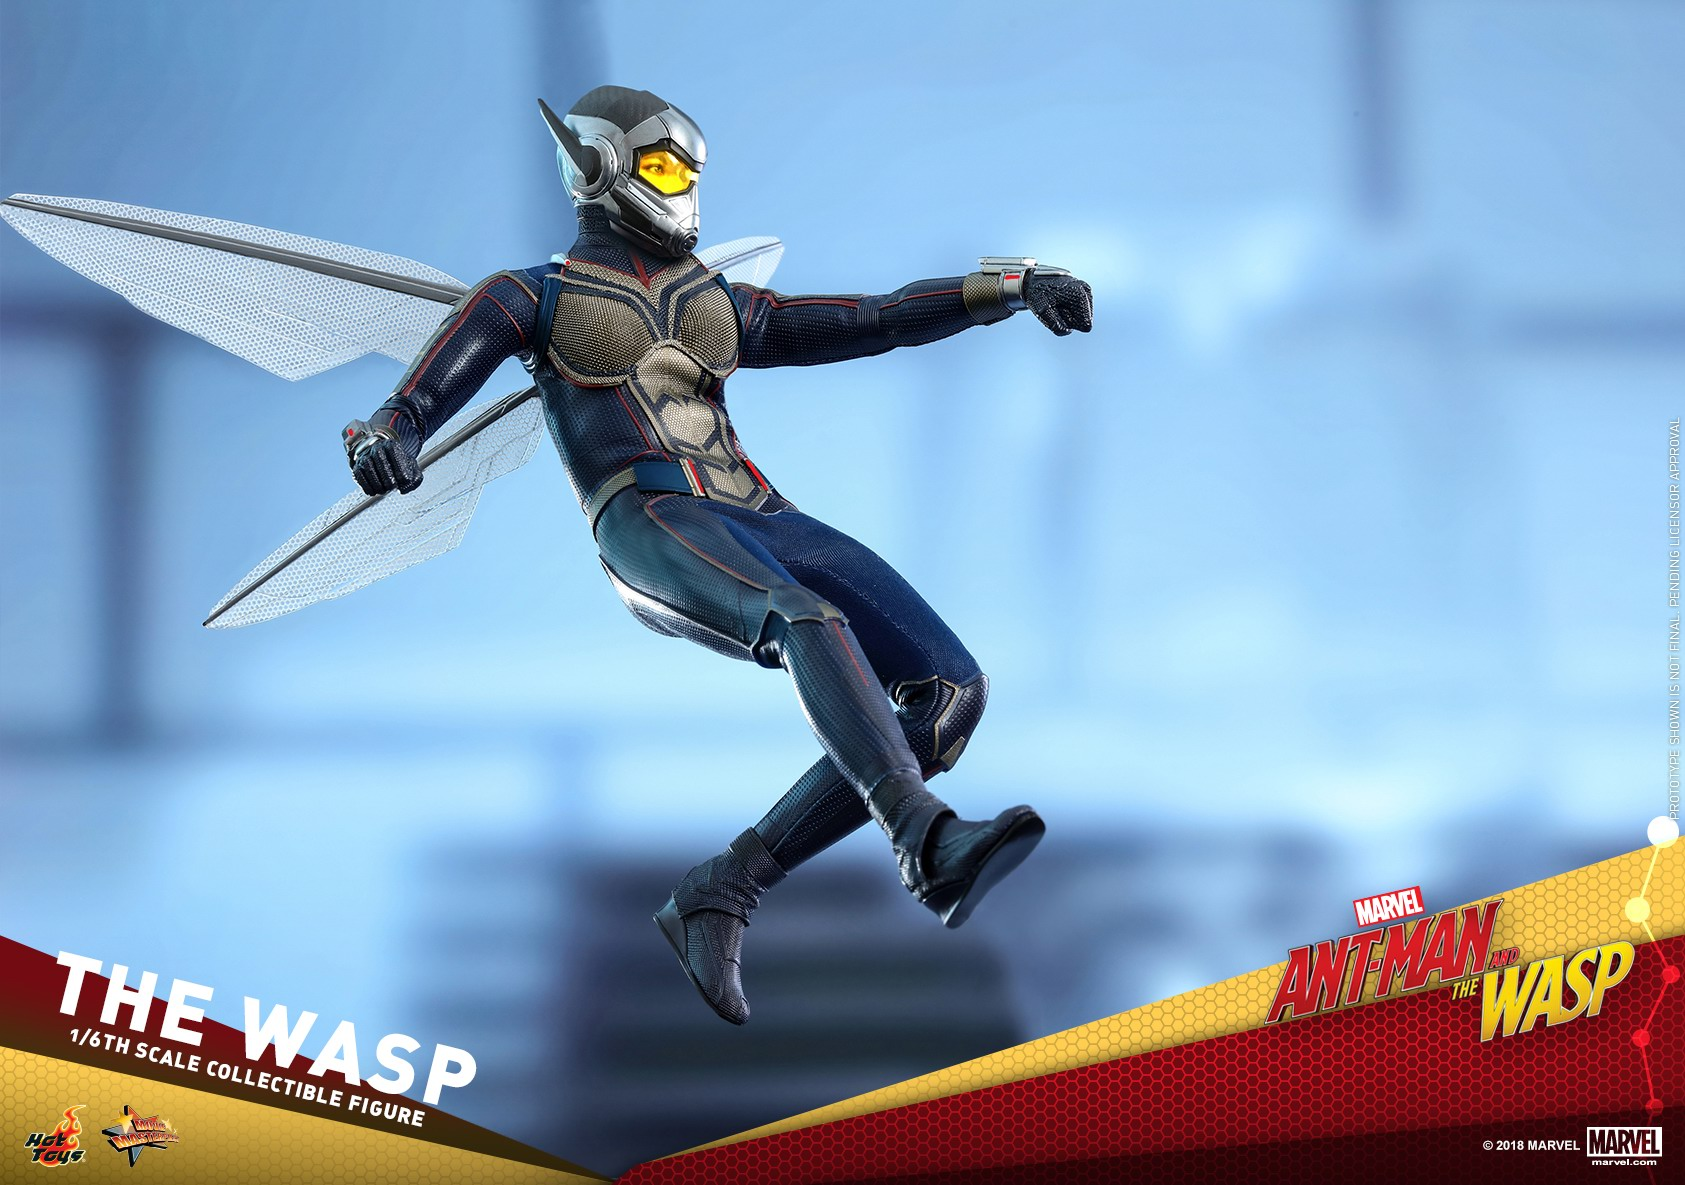 Hot-Toys-Ant-Man-and-The-Wasp-The-Wasp-Collectible-Figure_PR7.jpg